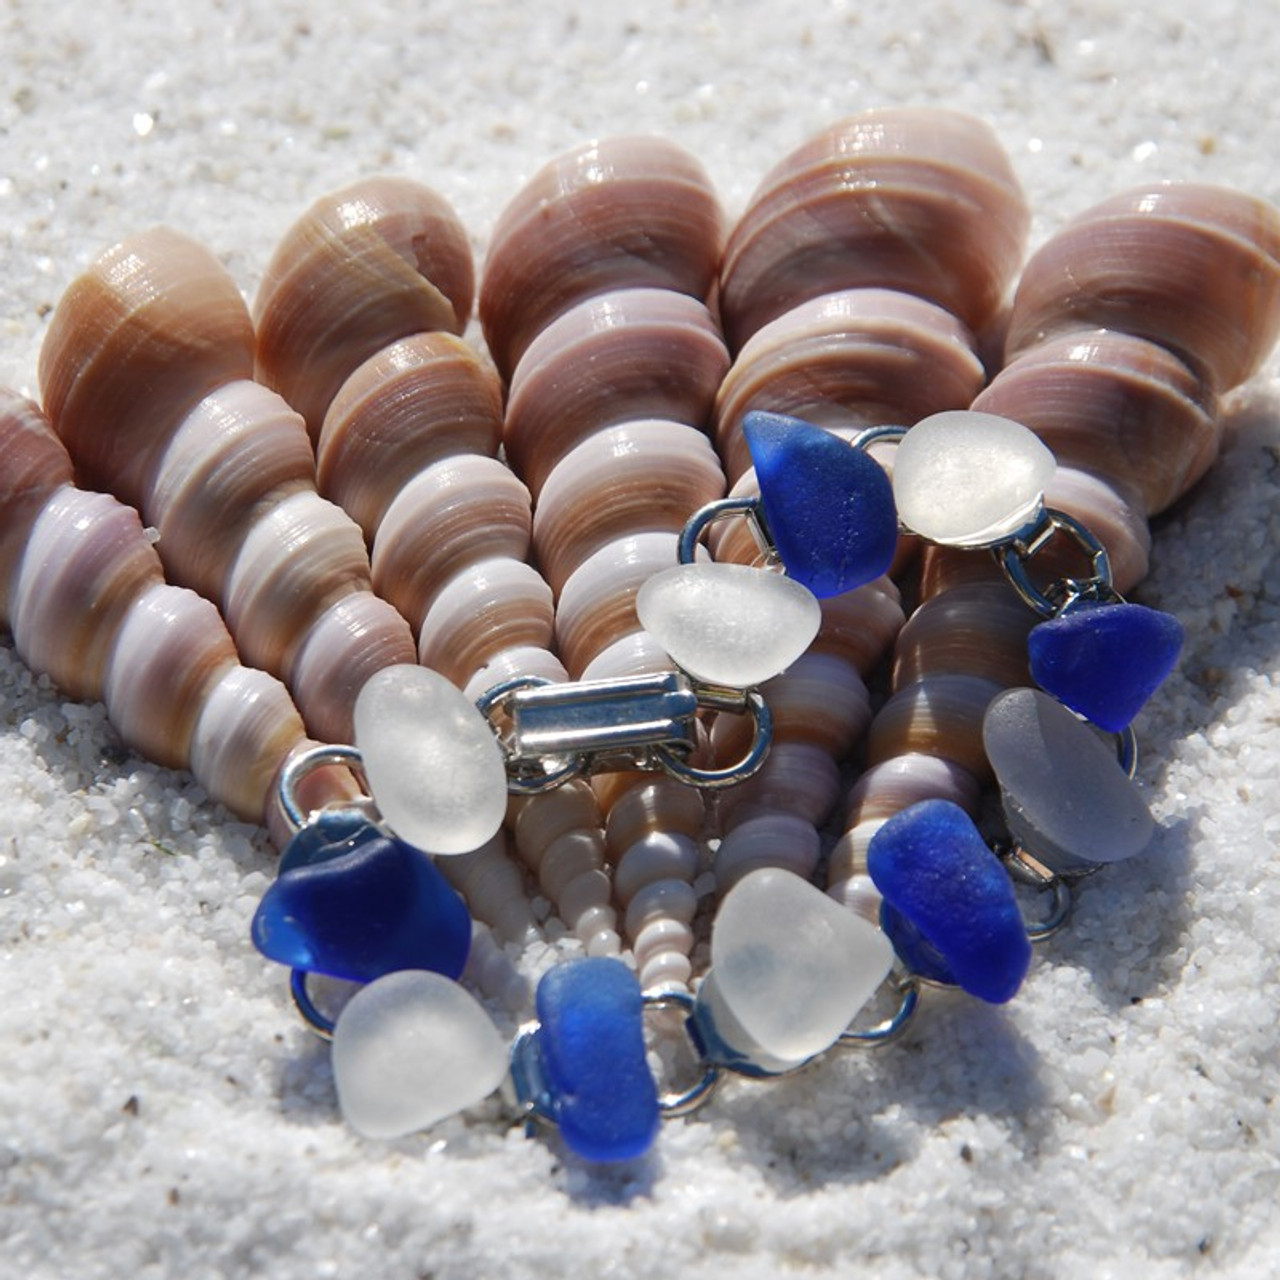 Frosted White and Cobalt Blue Sea Glass Bracelet - 3 Sizes Available - Made to Order